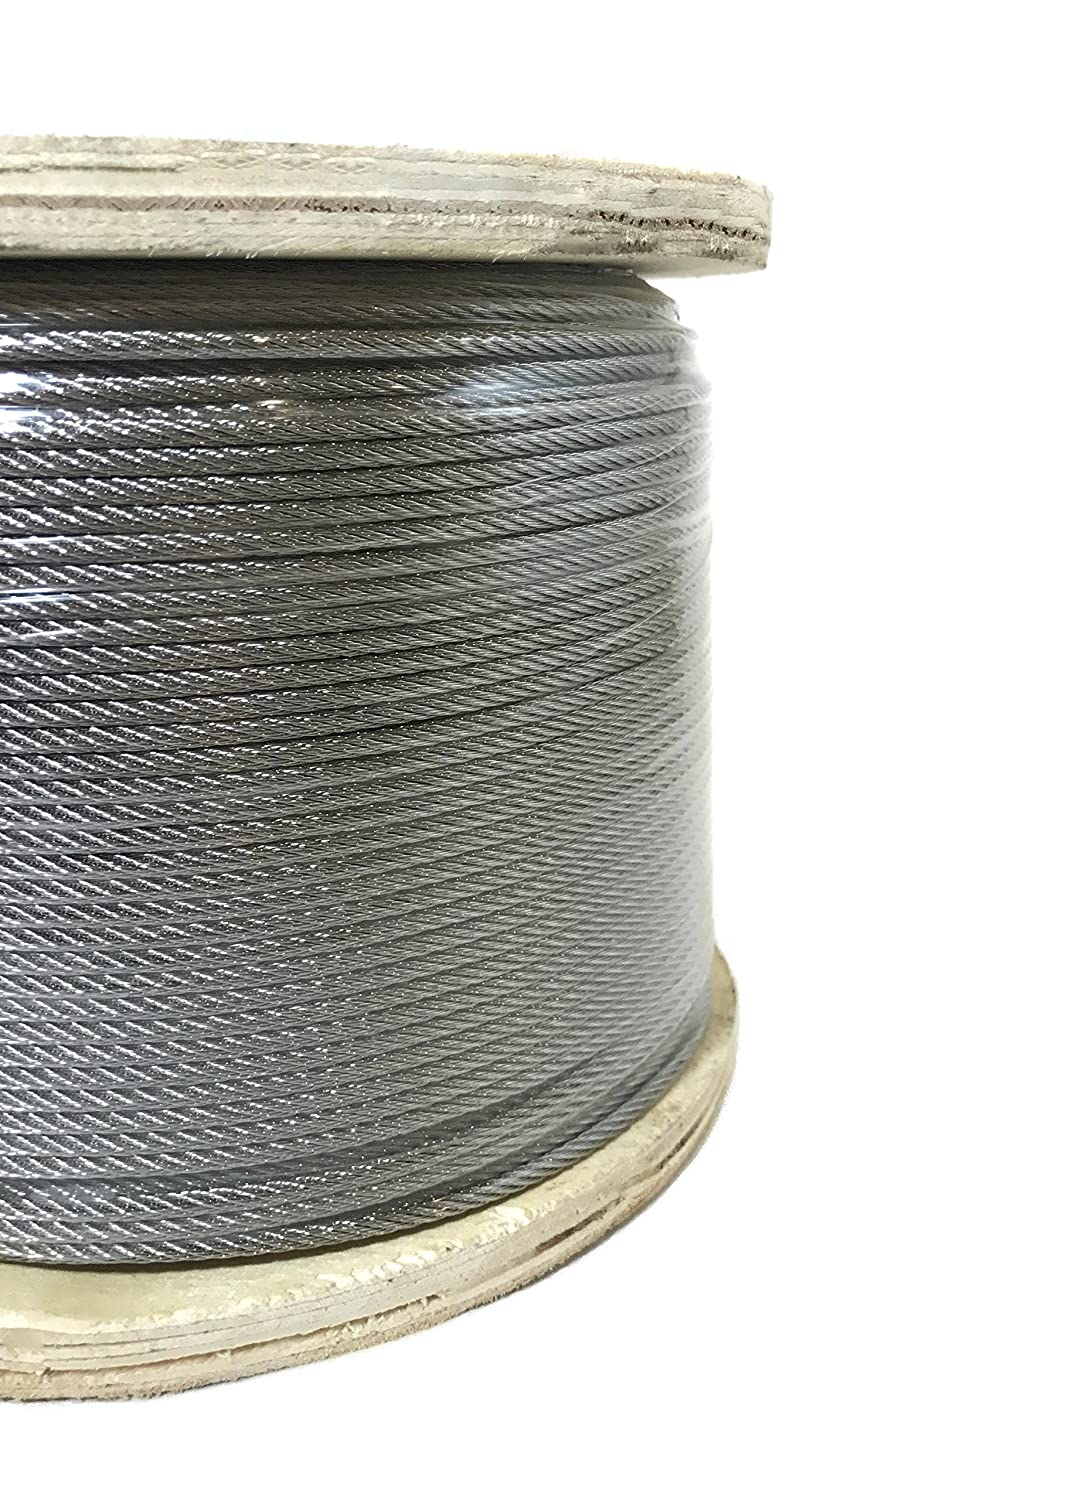 Image of 1/8' 7x7 Stainless Steel Cable Type 316 Marine Grade 500ft Reel Cable & Wire Rope